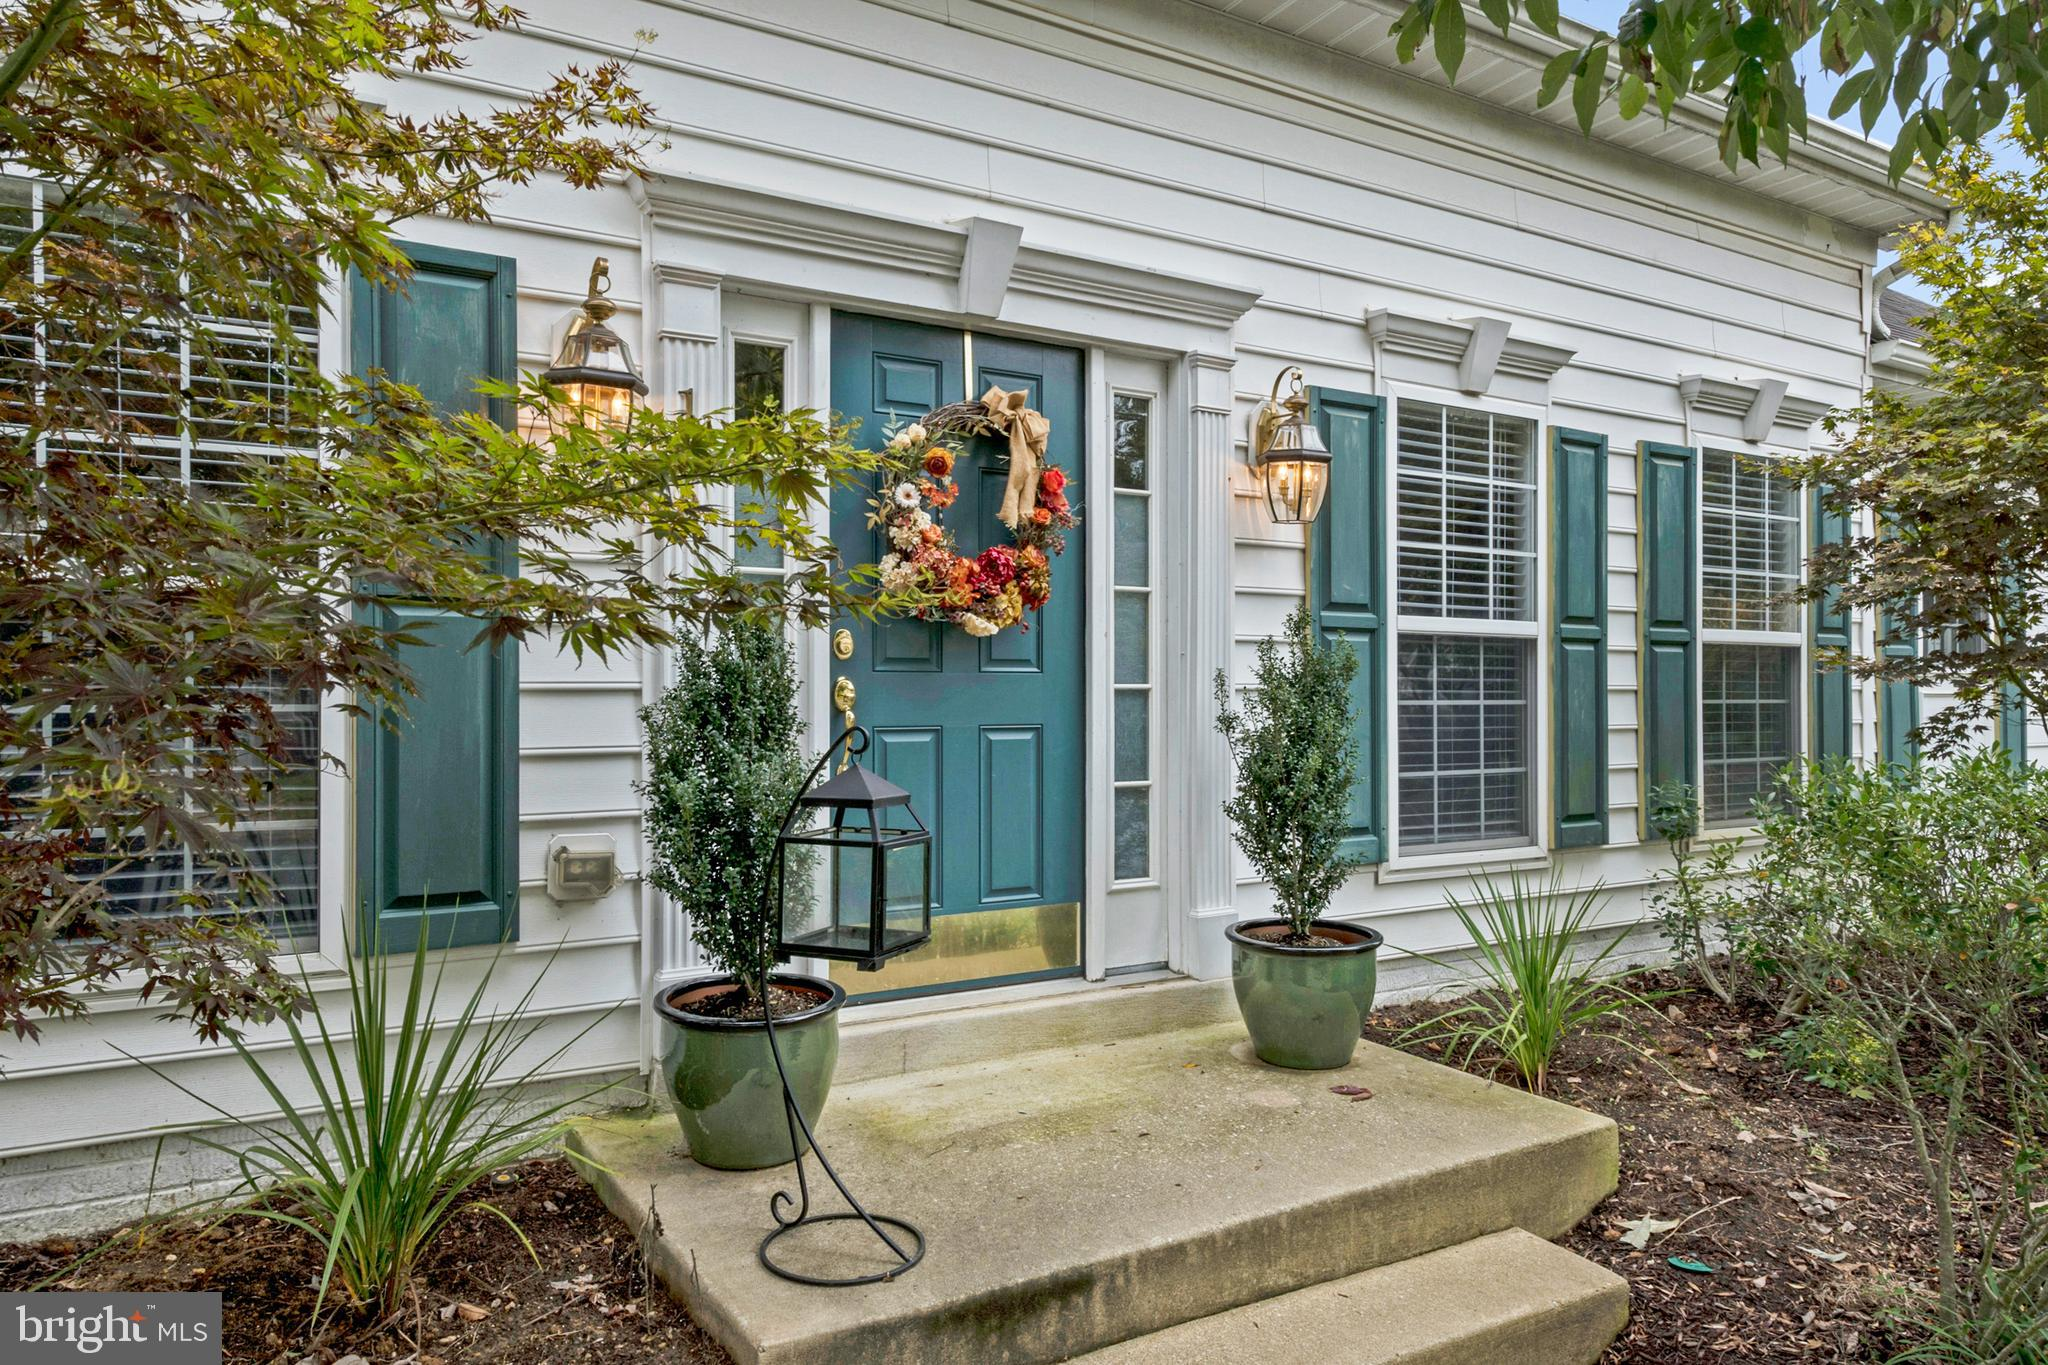 Light-filled home within easy walking distance of pools and Clubhouse. Almost 2500 sq. ft. finished